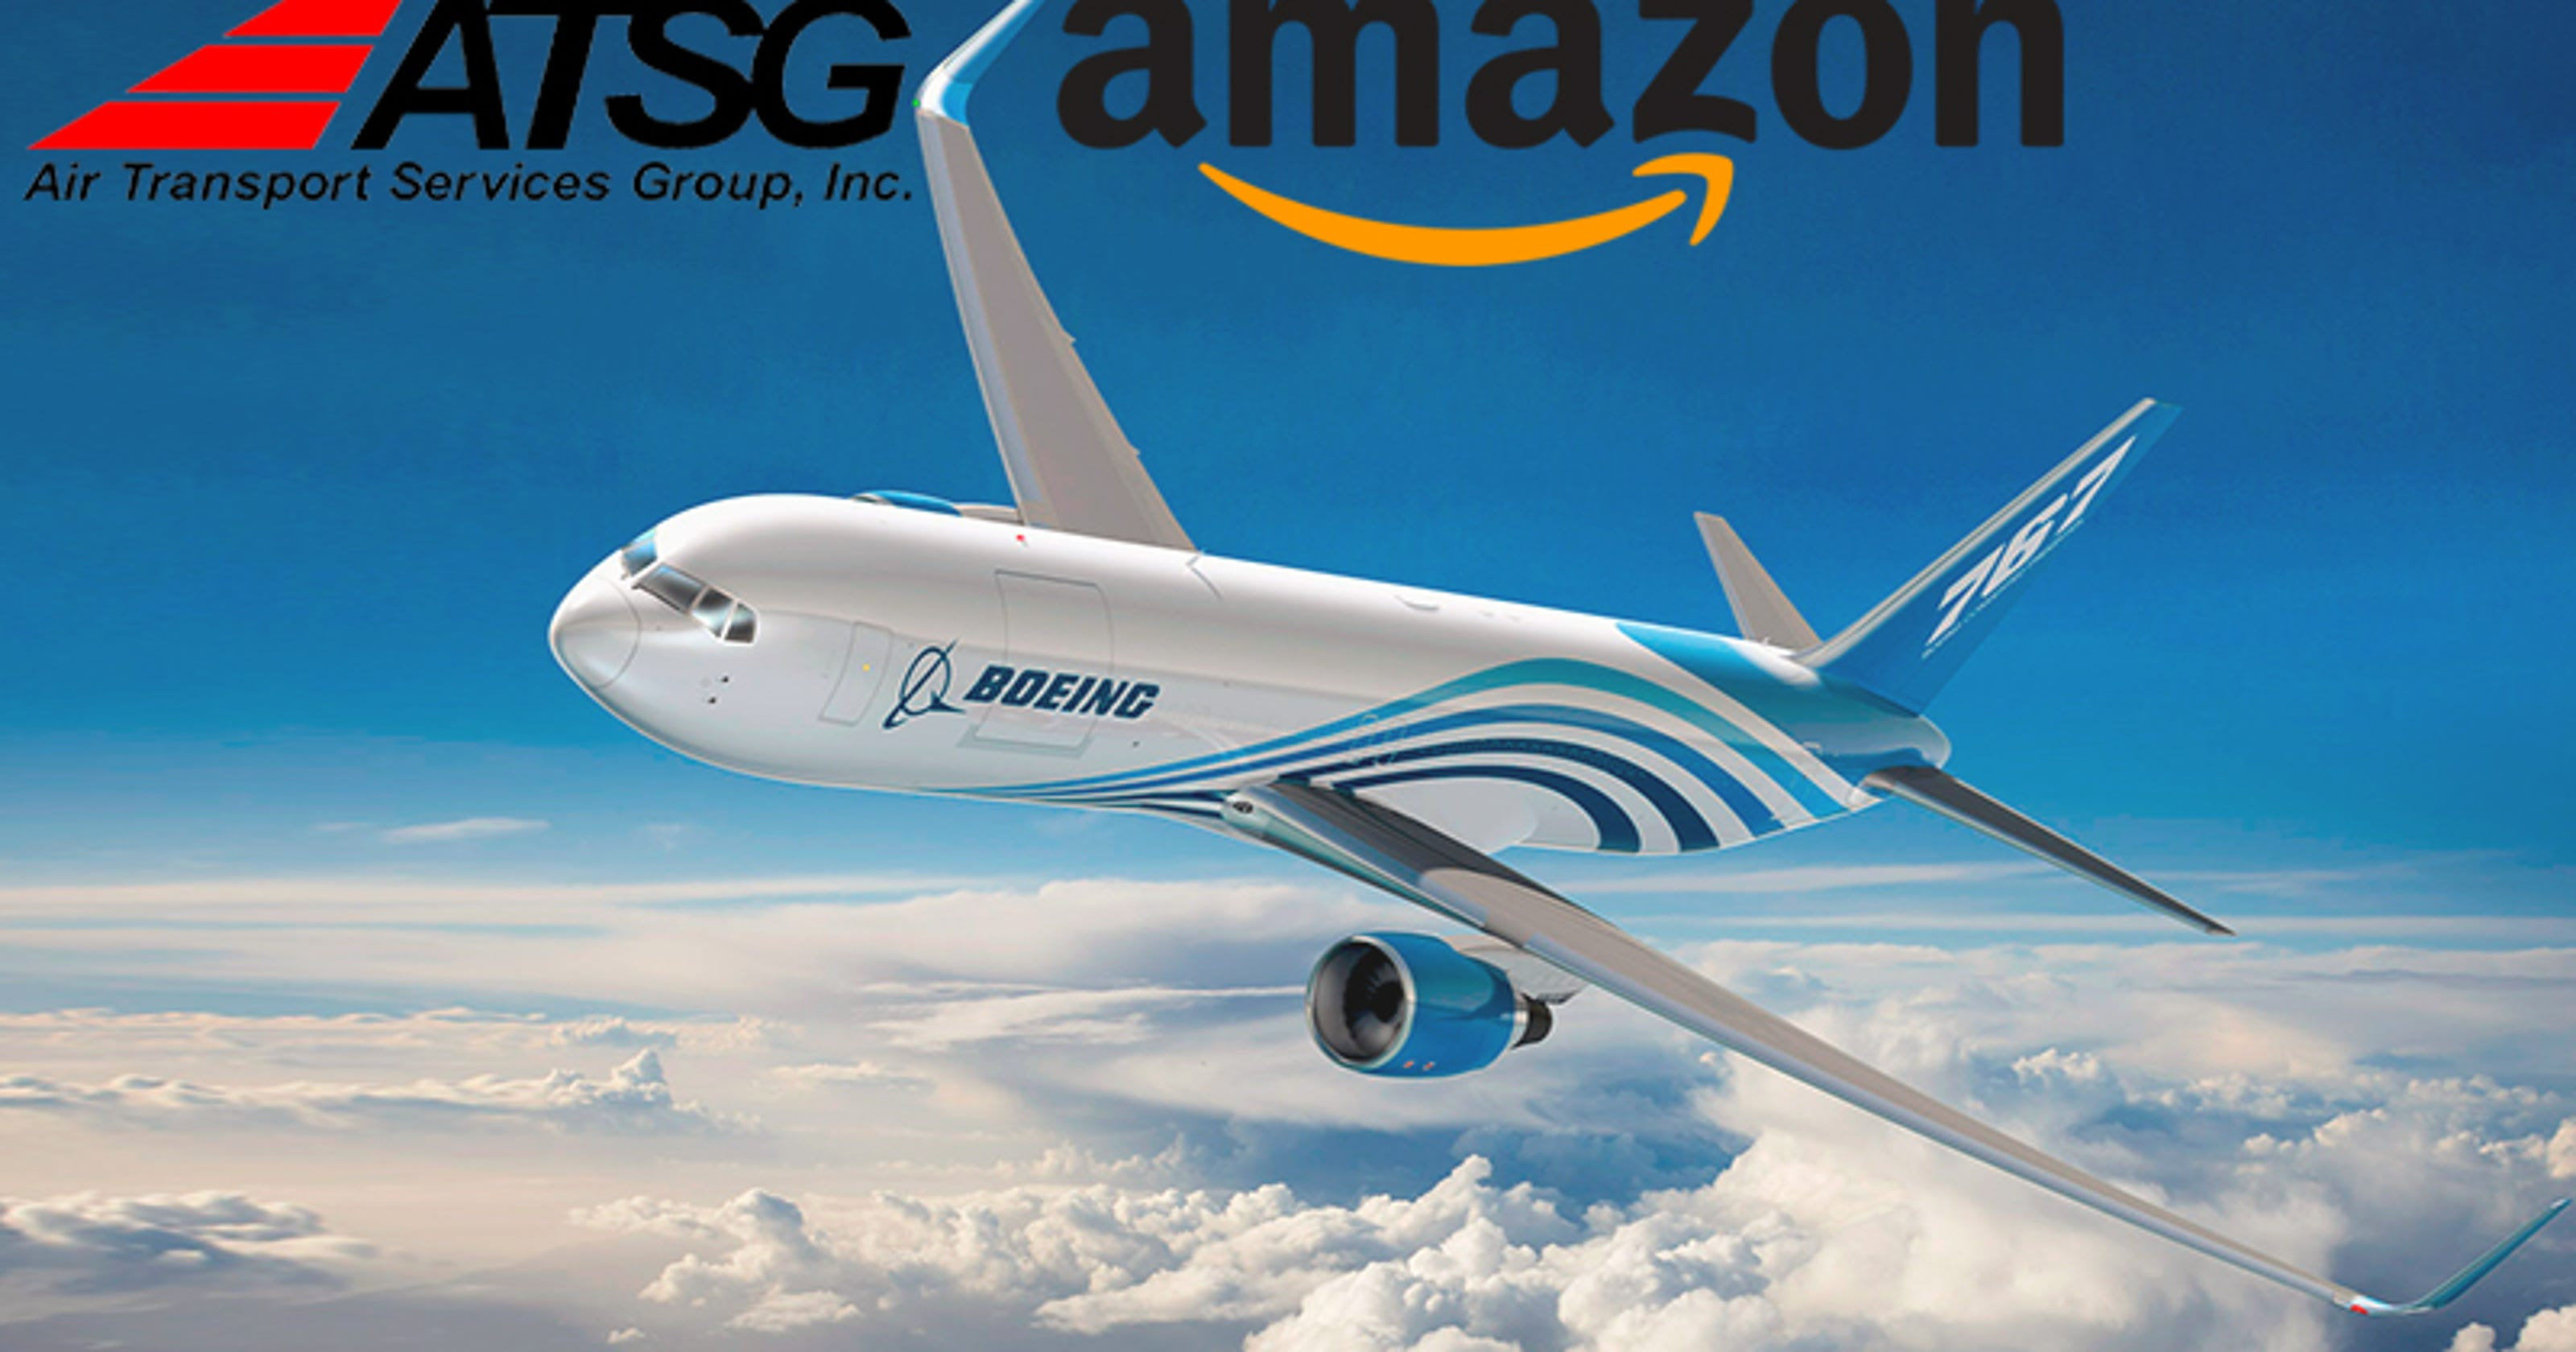 After Amazon deal, Wilmington firm ready for takeoff